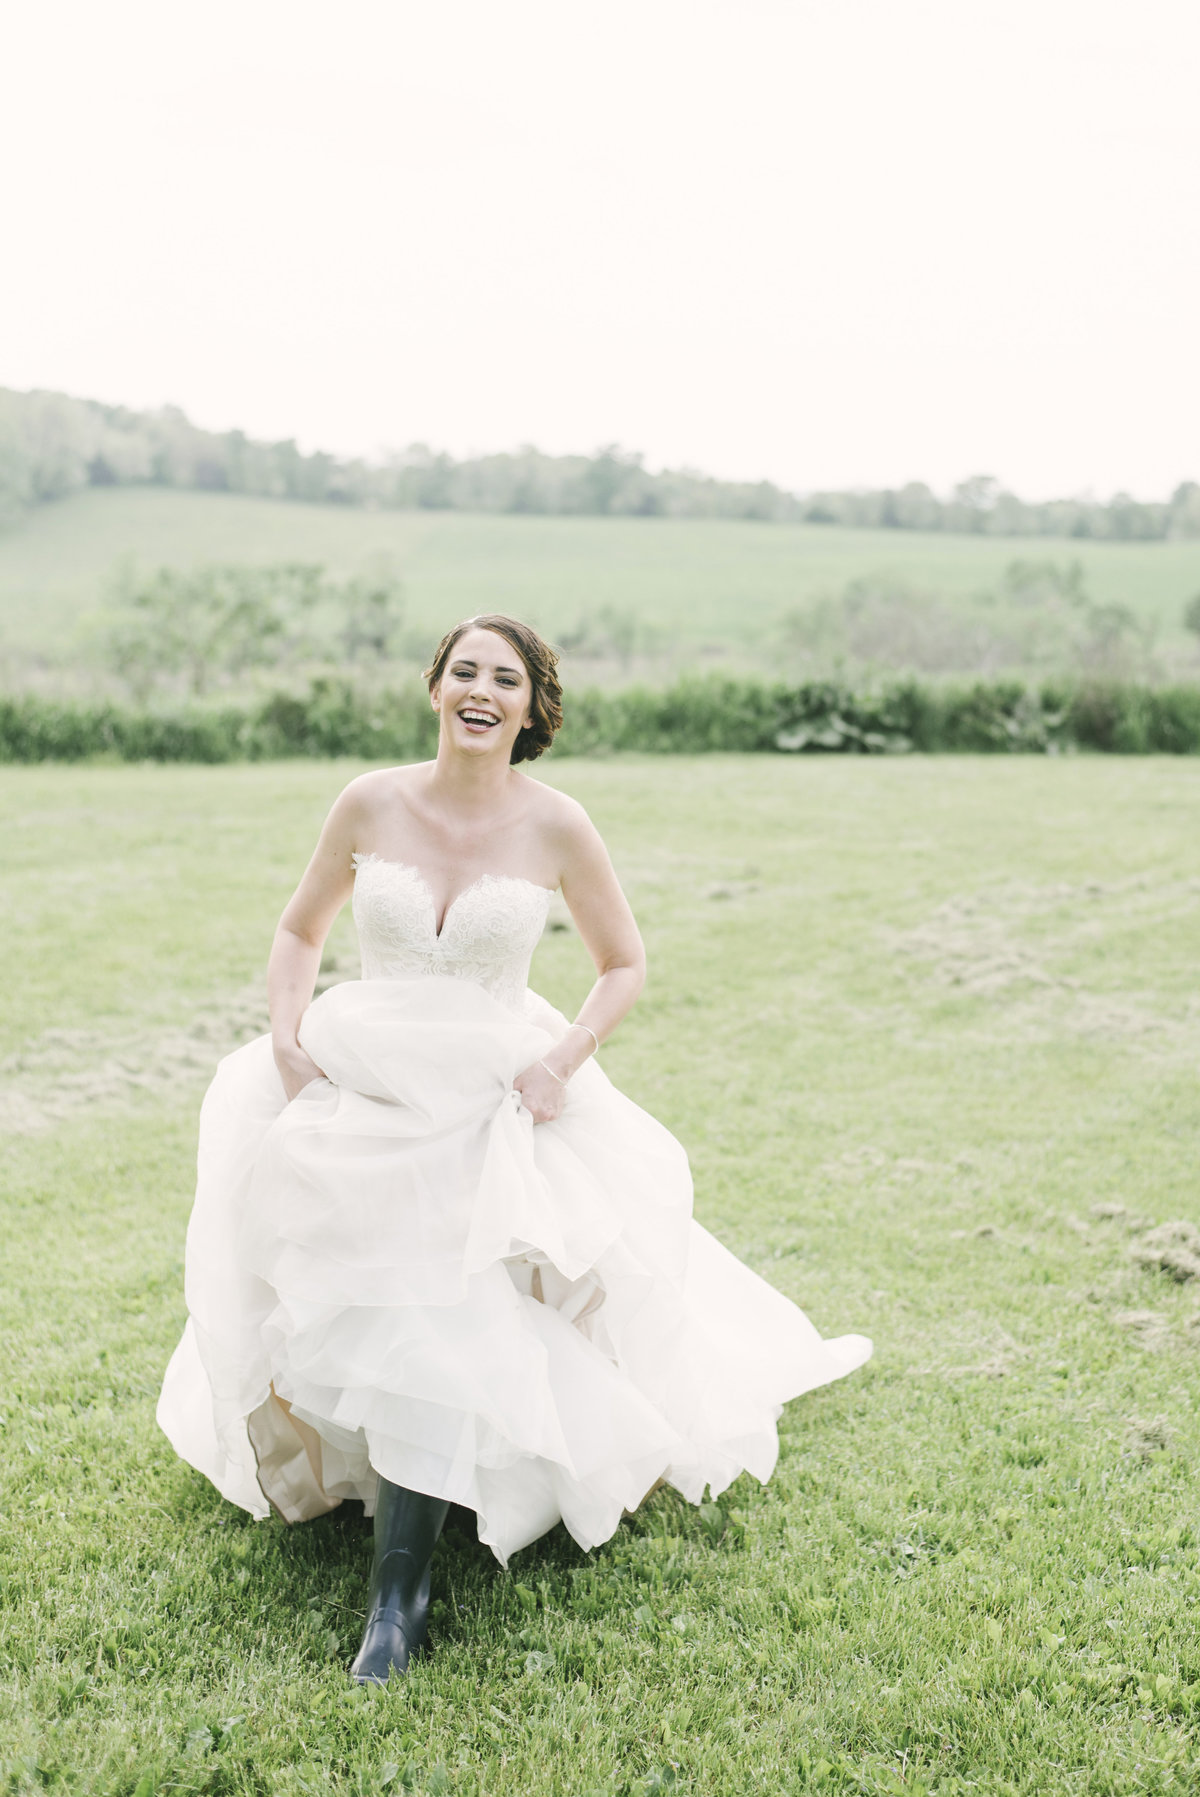 Monica-Relyea-Events-Alicia-King-Photography-Globe-Hill-Ronnybrook-Farm-Hudson-Valley-wedding-shoot-inspiration21